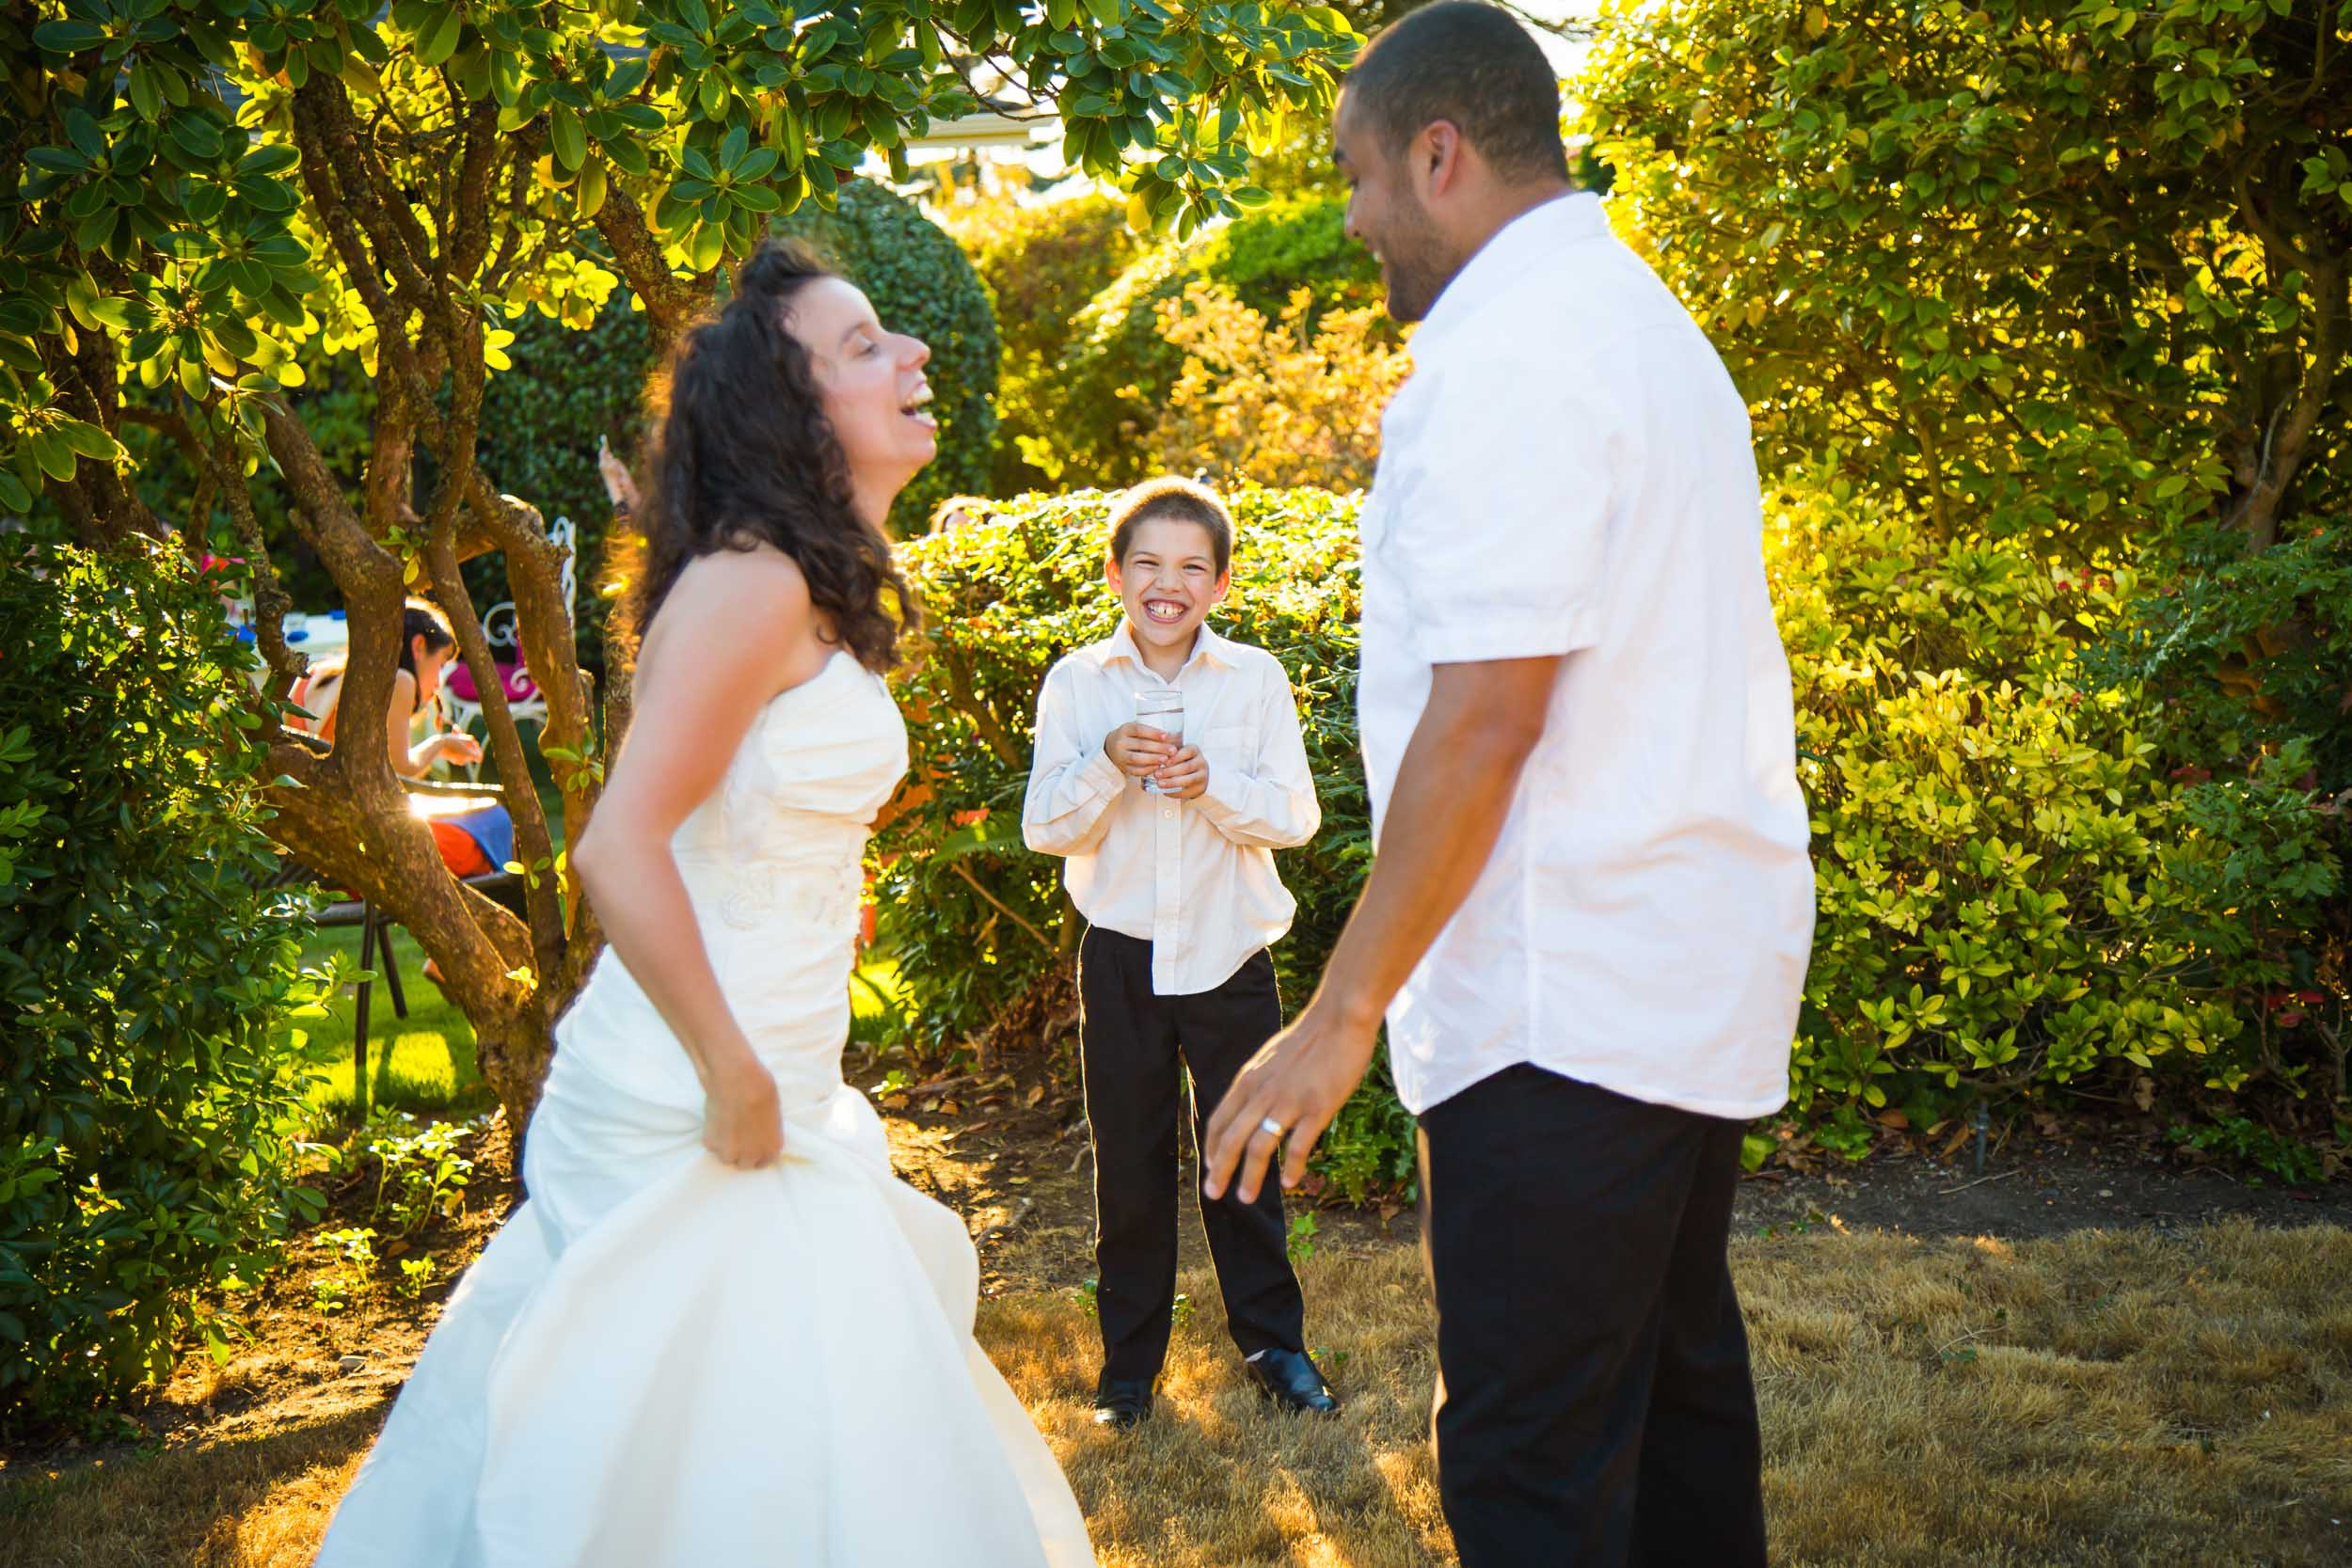 Seattle Wedding Photographer | By G. Lin Photography | Sunset shot of candid moment